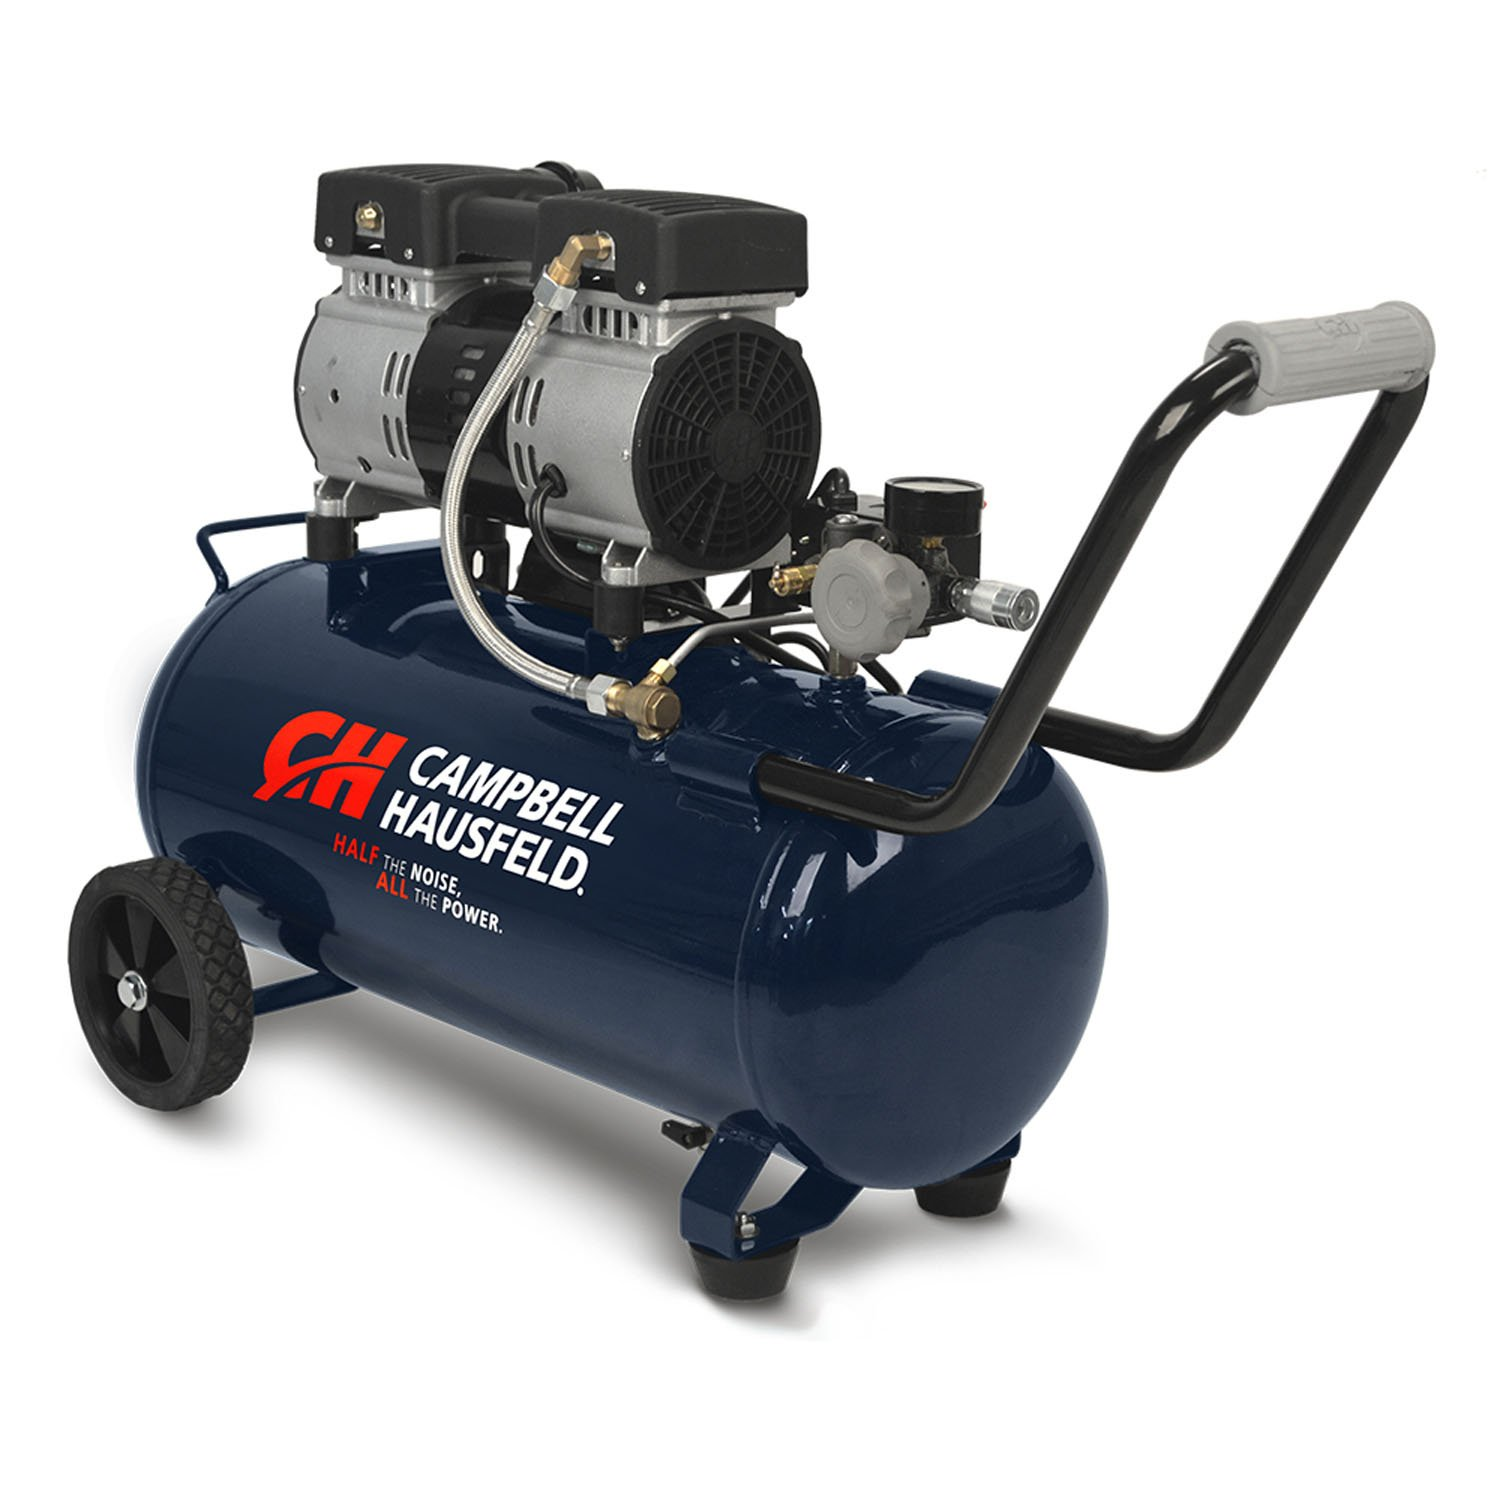 Quiet Air Compressor, 8 Gallon, Half the Noise, 4X the Life, All the Power (Campbell Hausfeld  DC080500) by Campbell Hausfeld